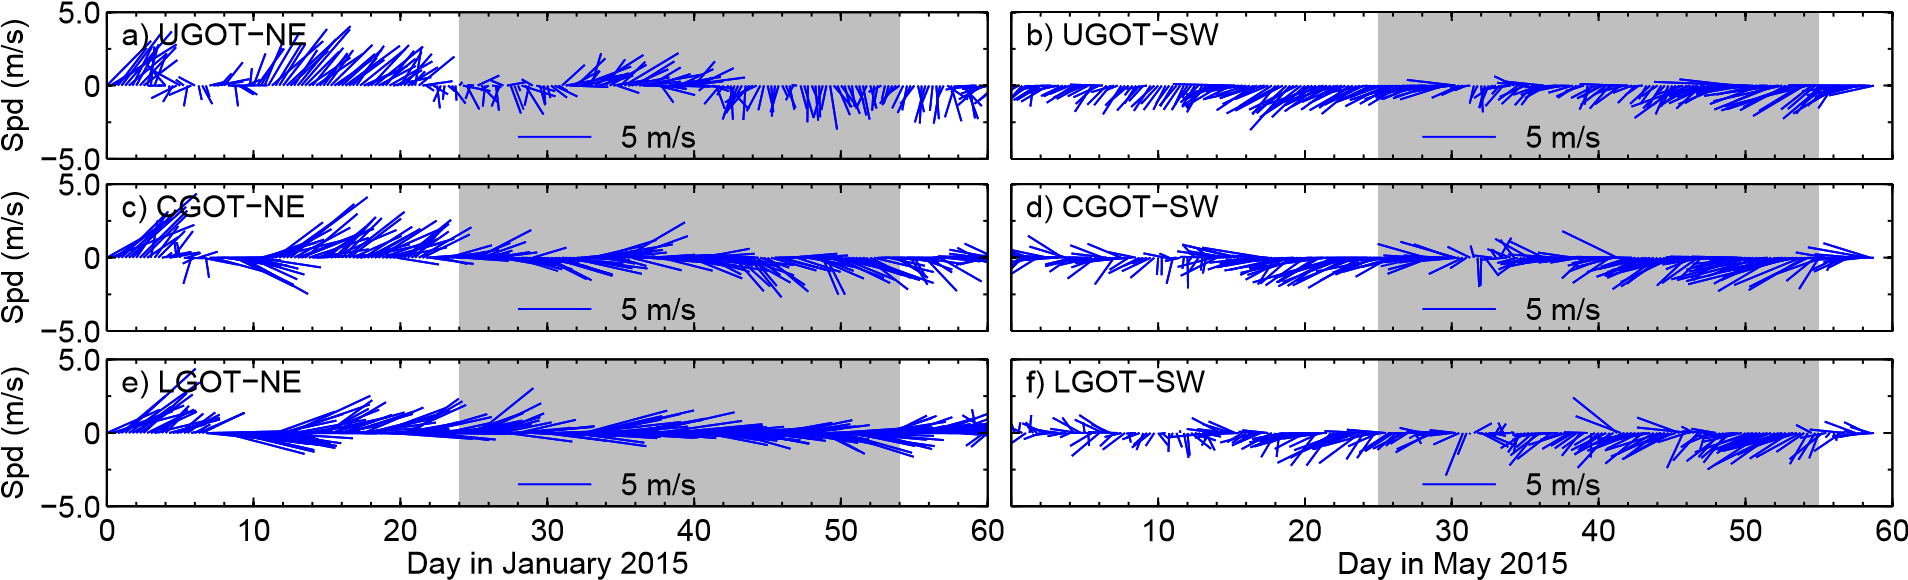 Seasonal Monsoon Variations in Surface Currents in the Gulf of